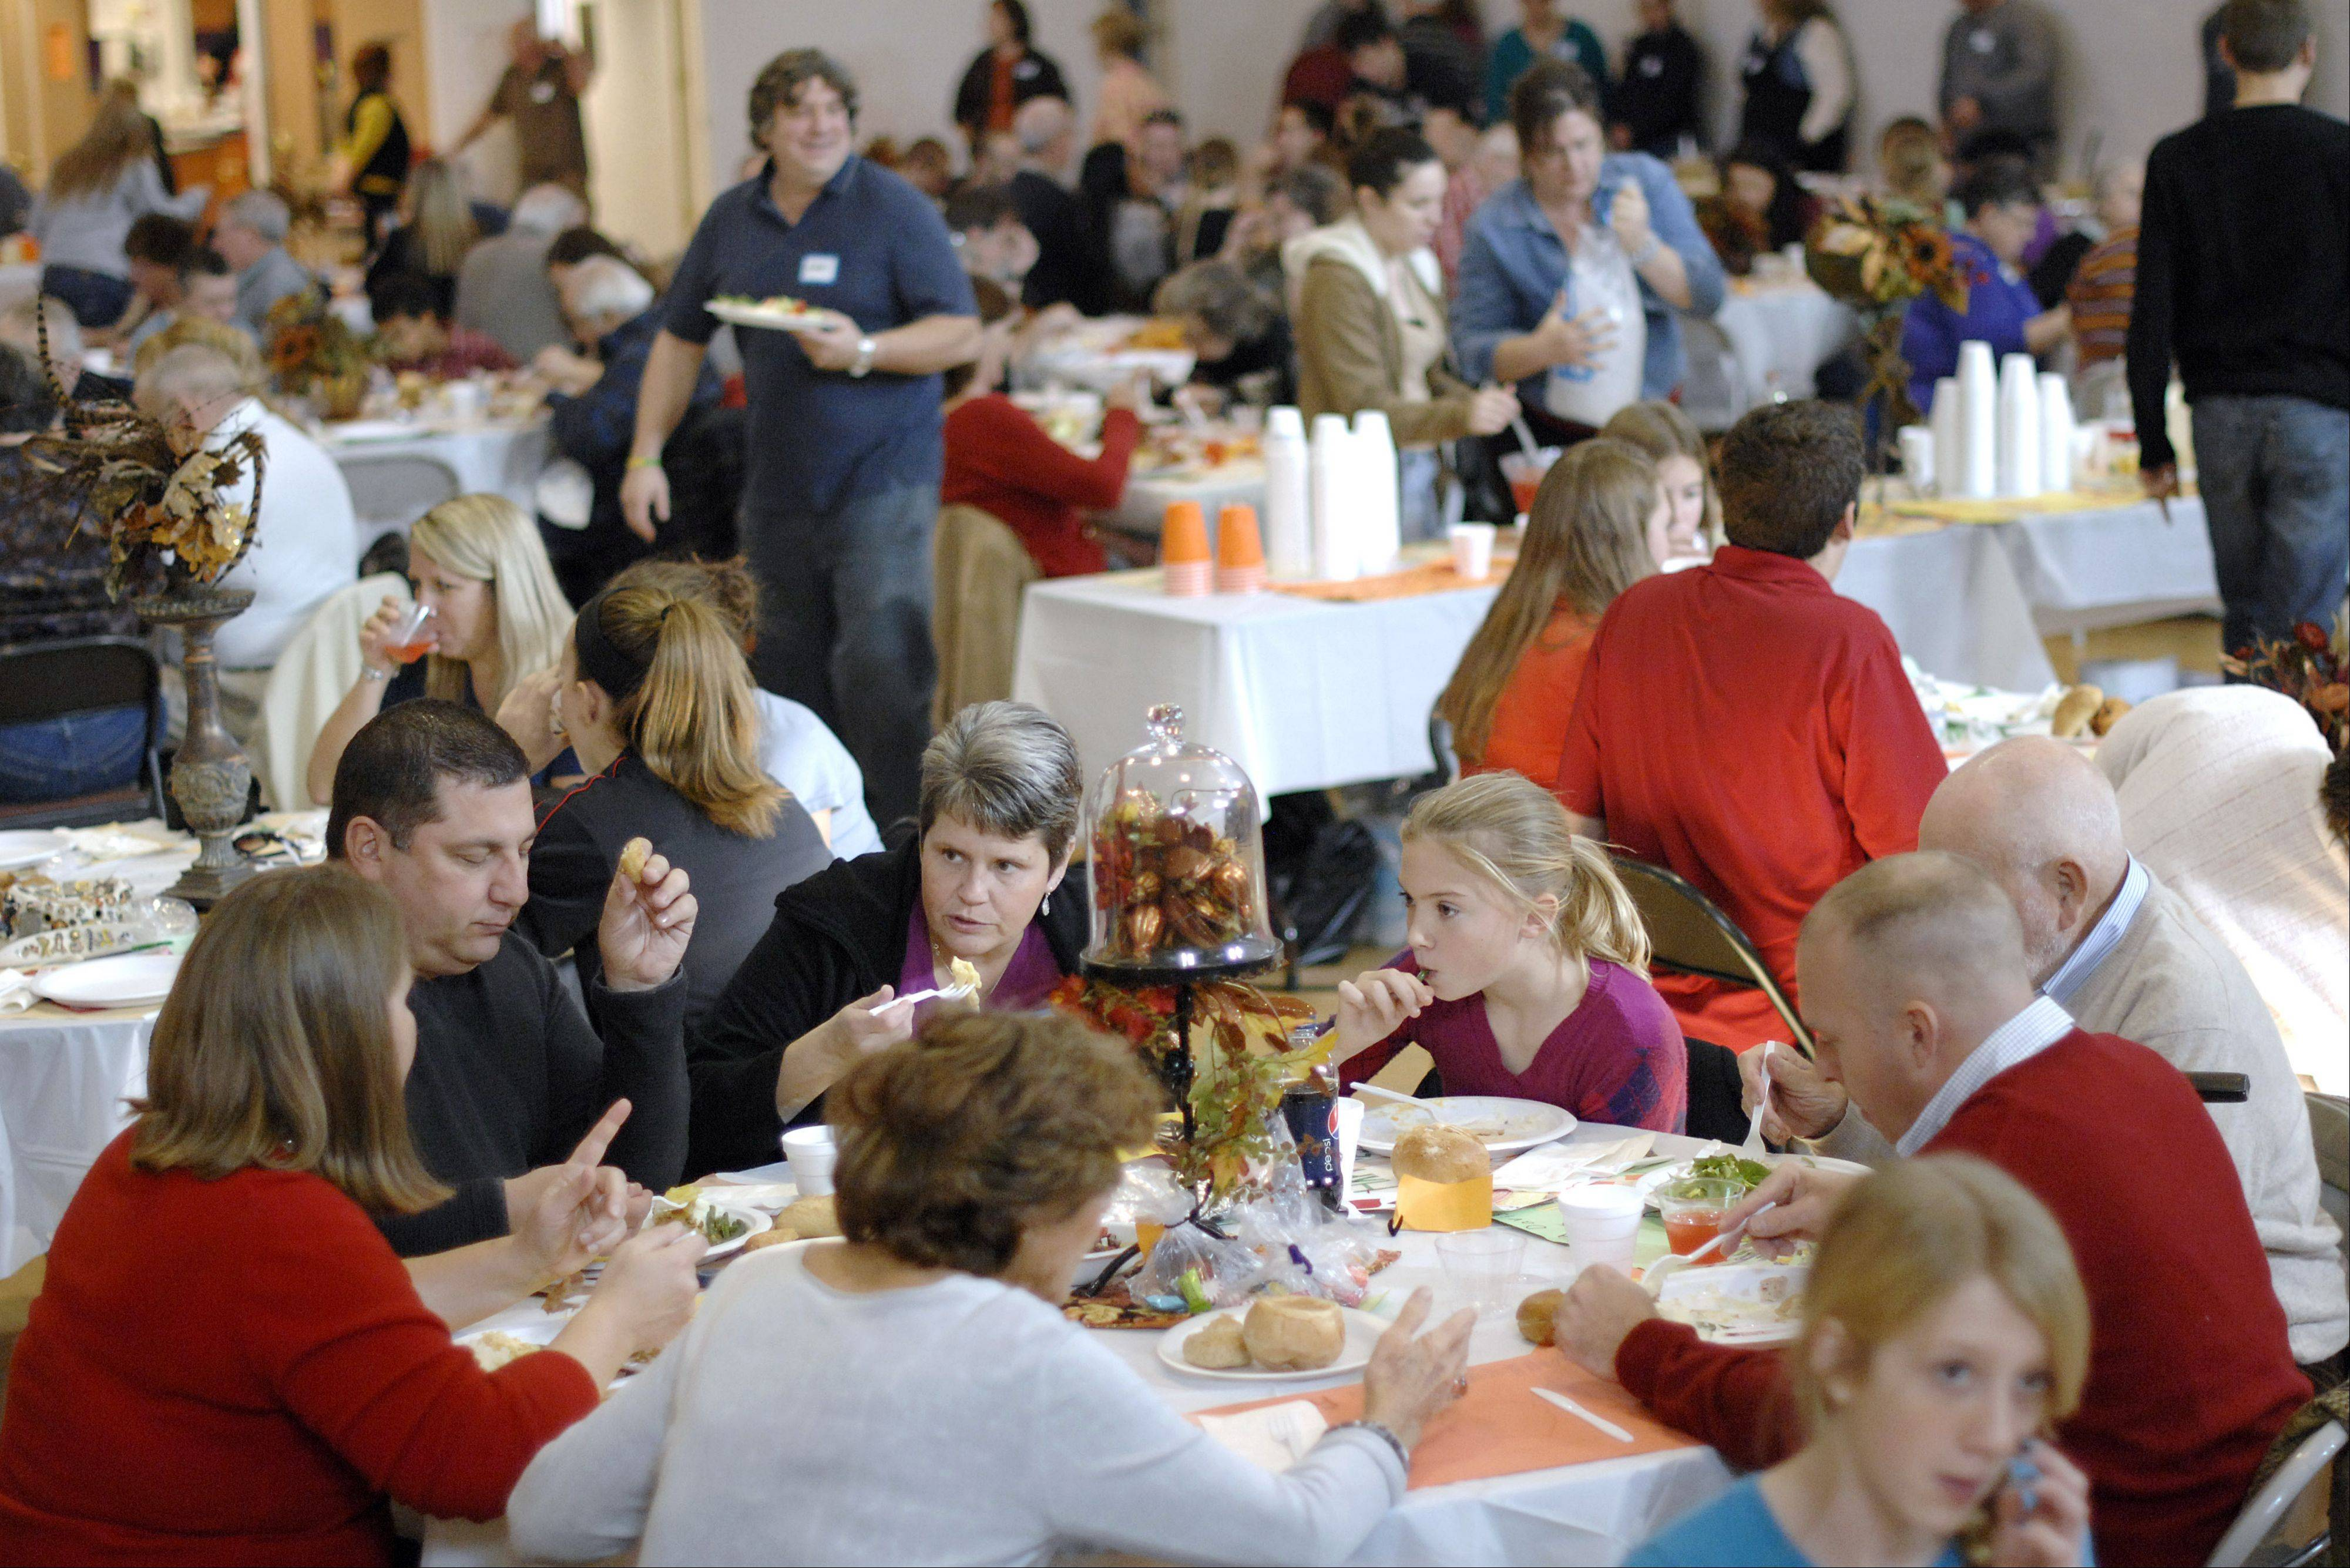 Families dine at the annual Thanksgiving Day dinner hosted by Lazarus House at the Salvation Army in St. Charles.